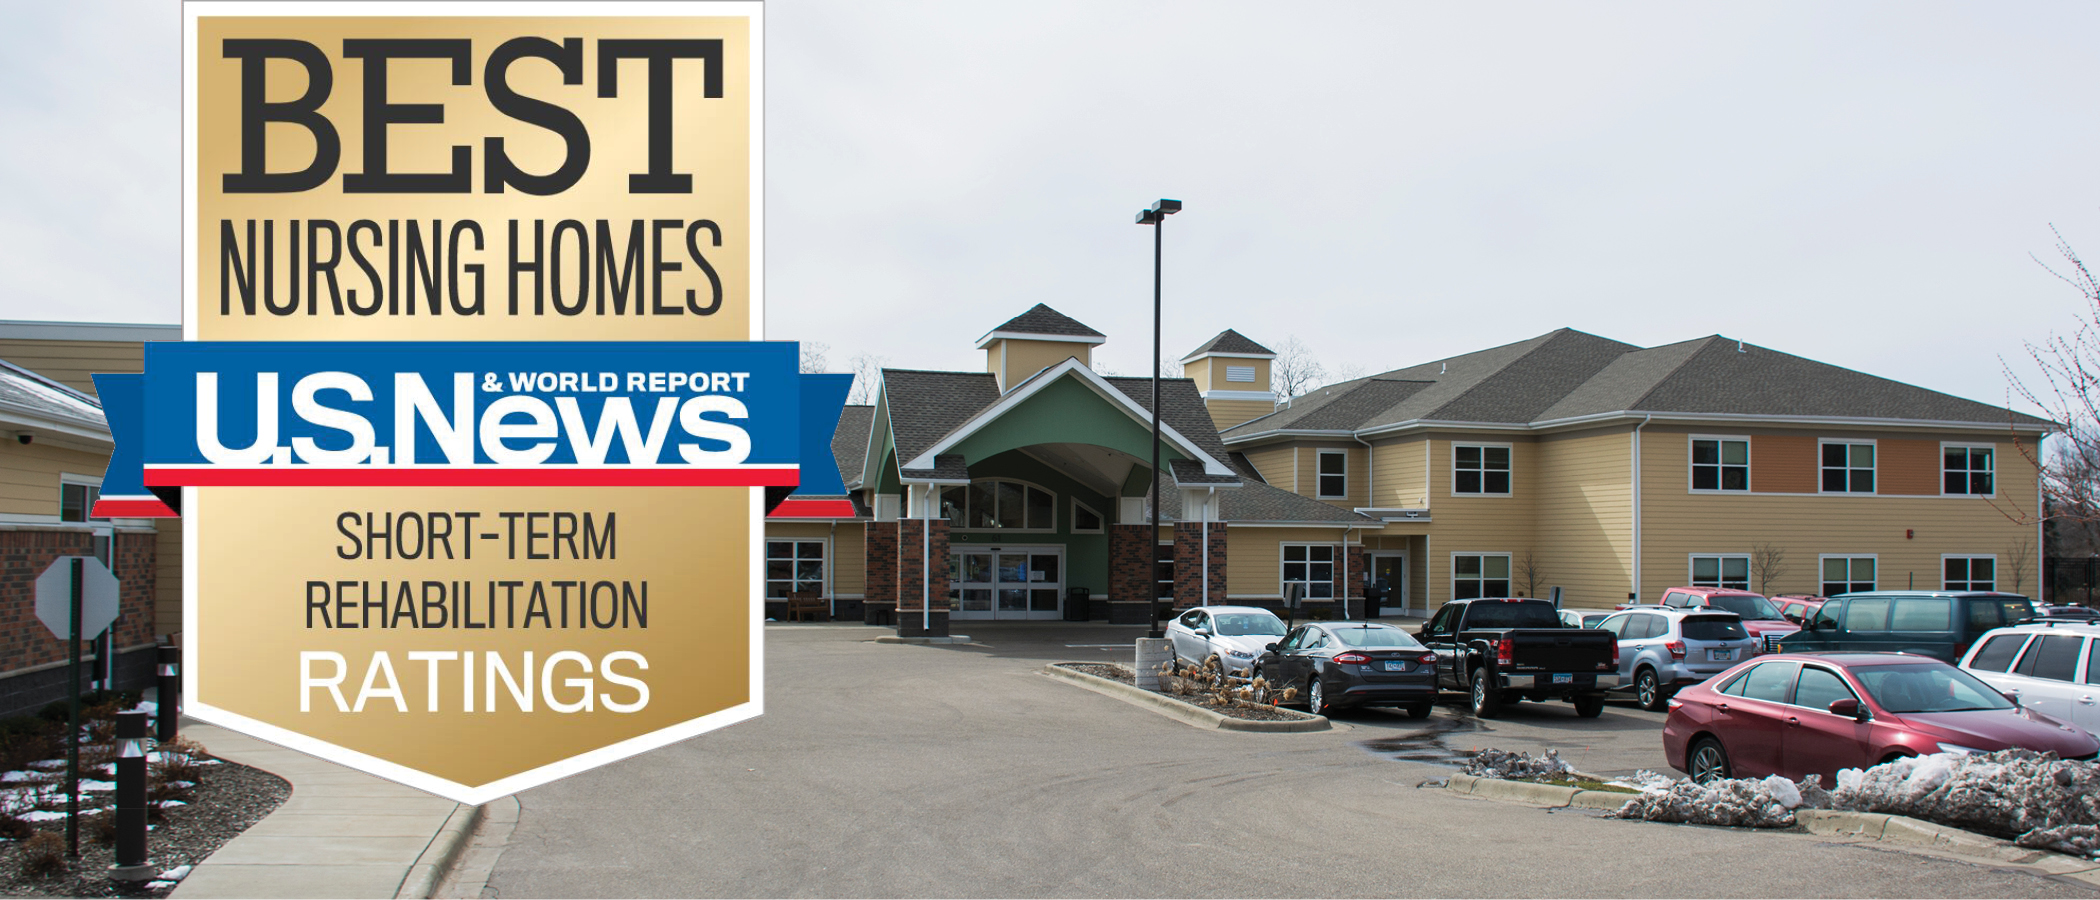 Westwood Ridge II receives Best Nursing Home award from U.S. News